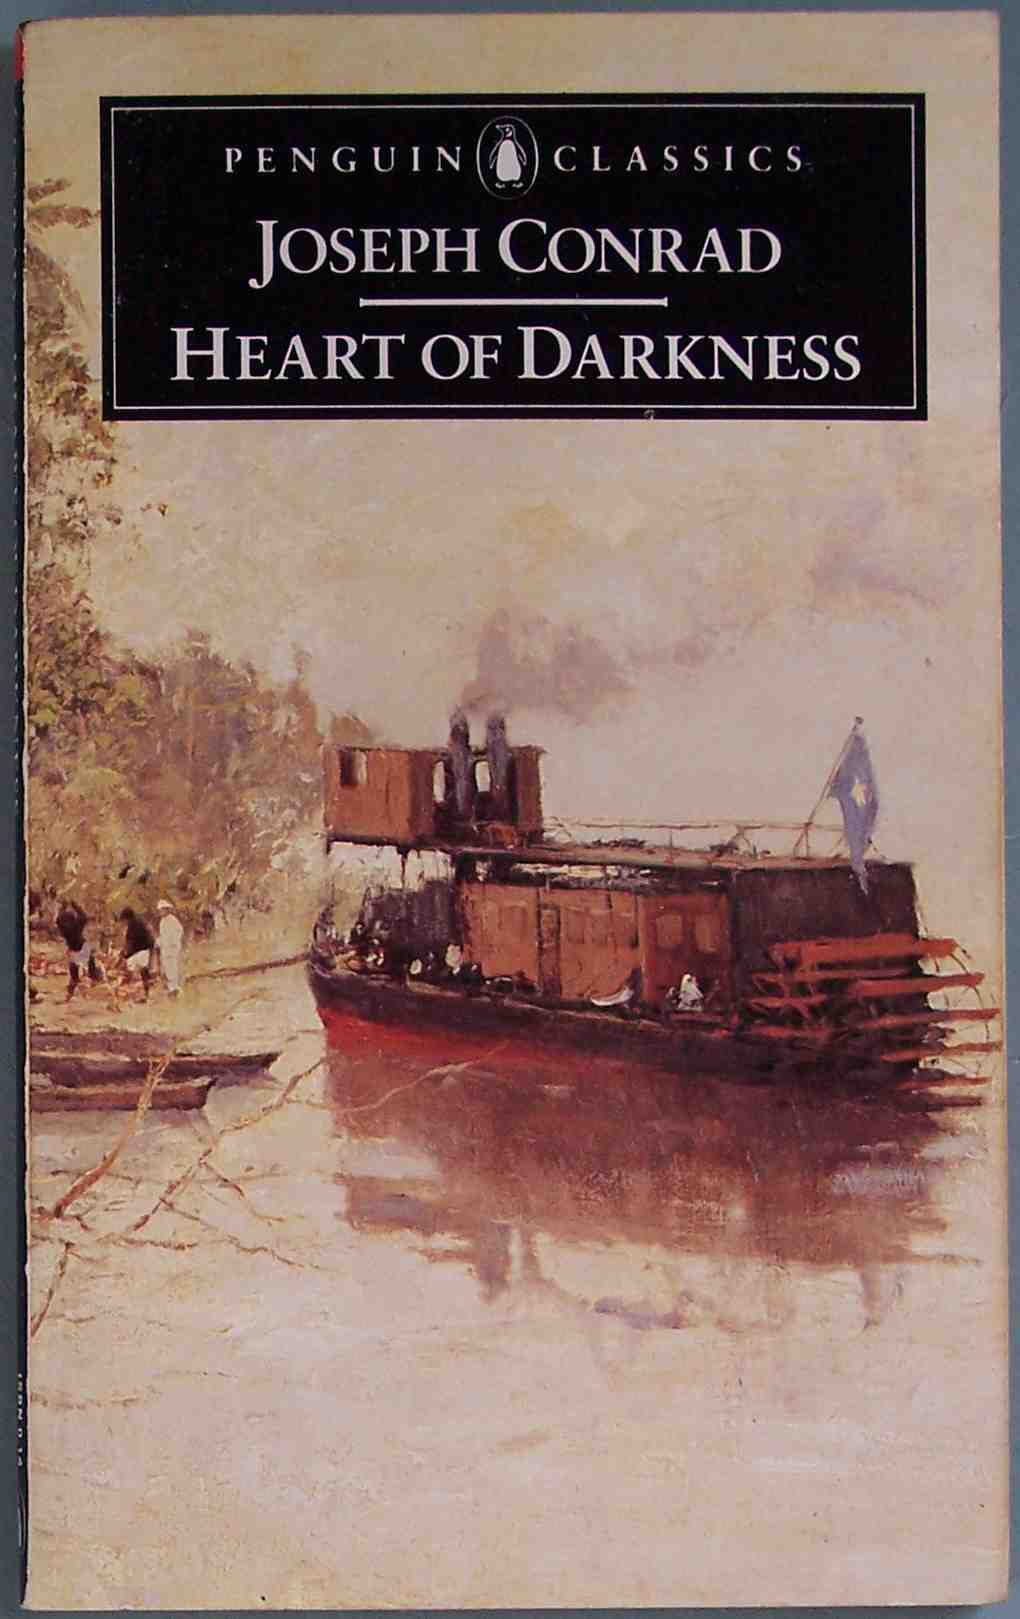 thoughts on heart of darkness through the fringe heart of darkness by joseph conrad is a short novel which seems to have permeated into the british consciousness i d never actually heard of the book